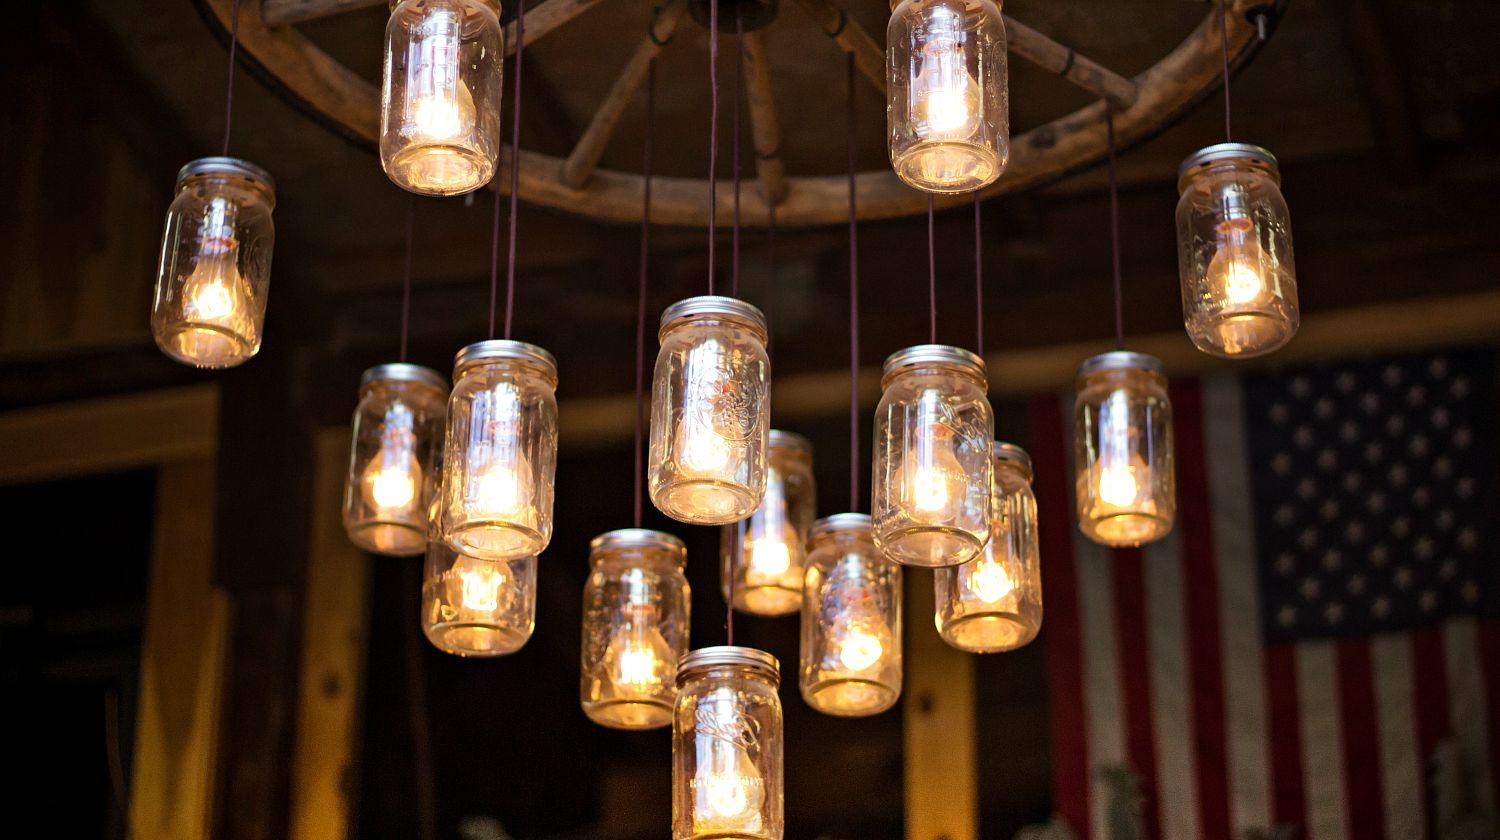 Feature | Hanging jar with lighted lights | How To Make Mason Jar Solar Lights